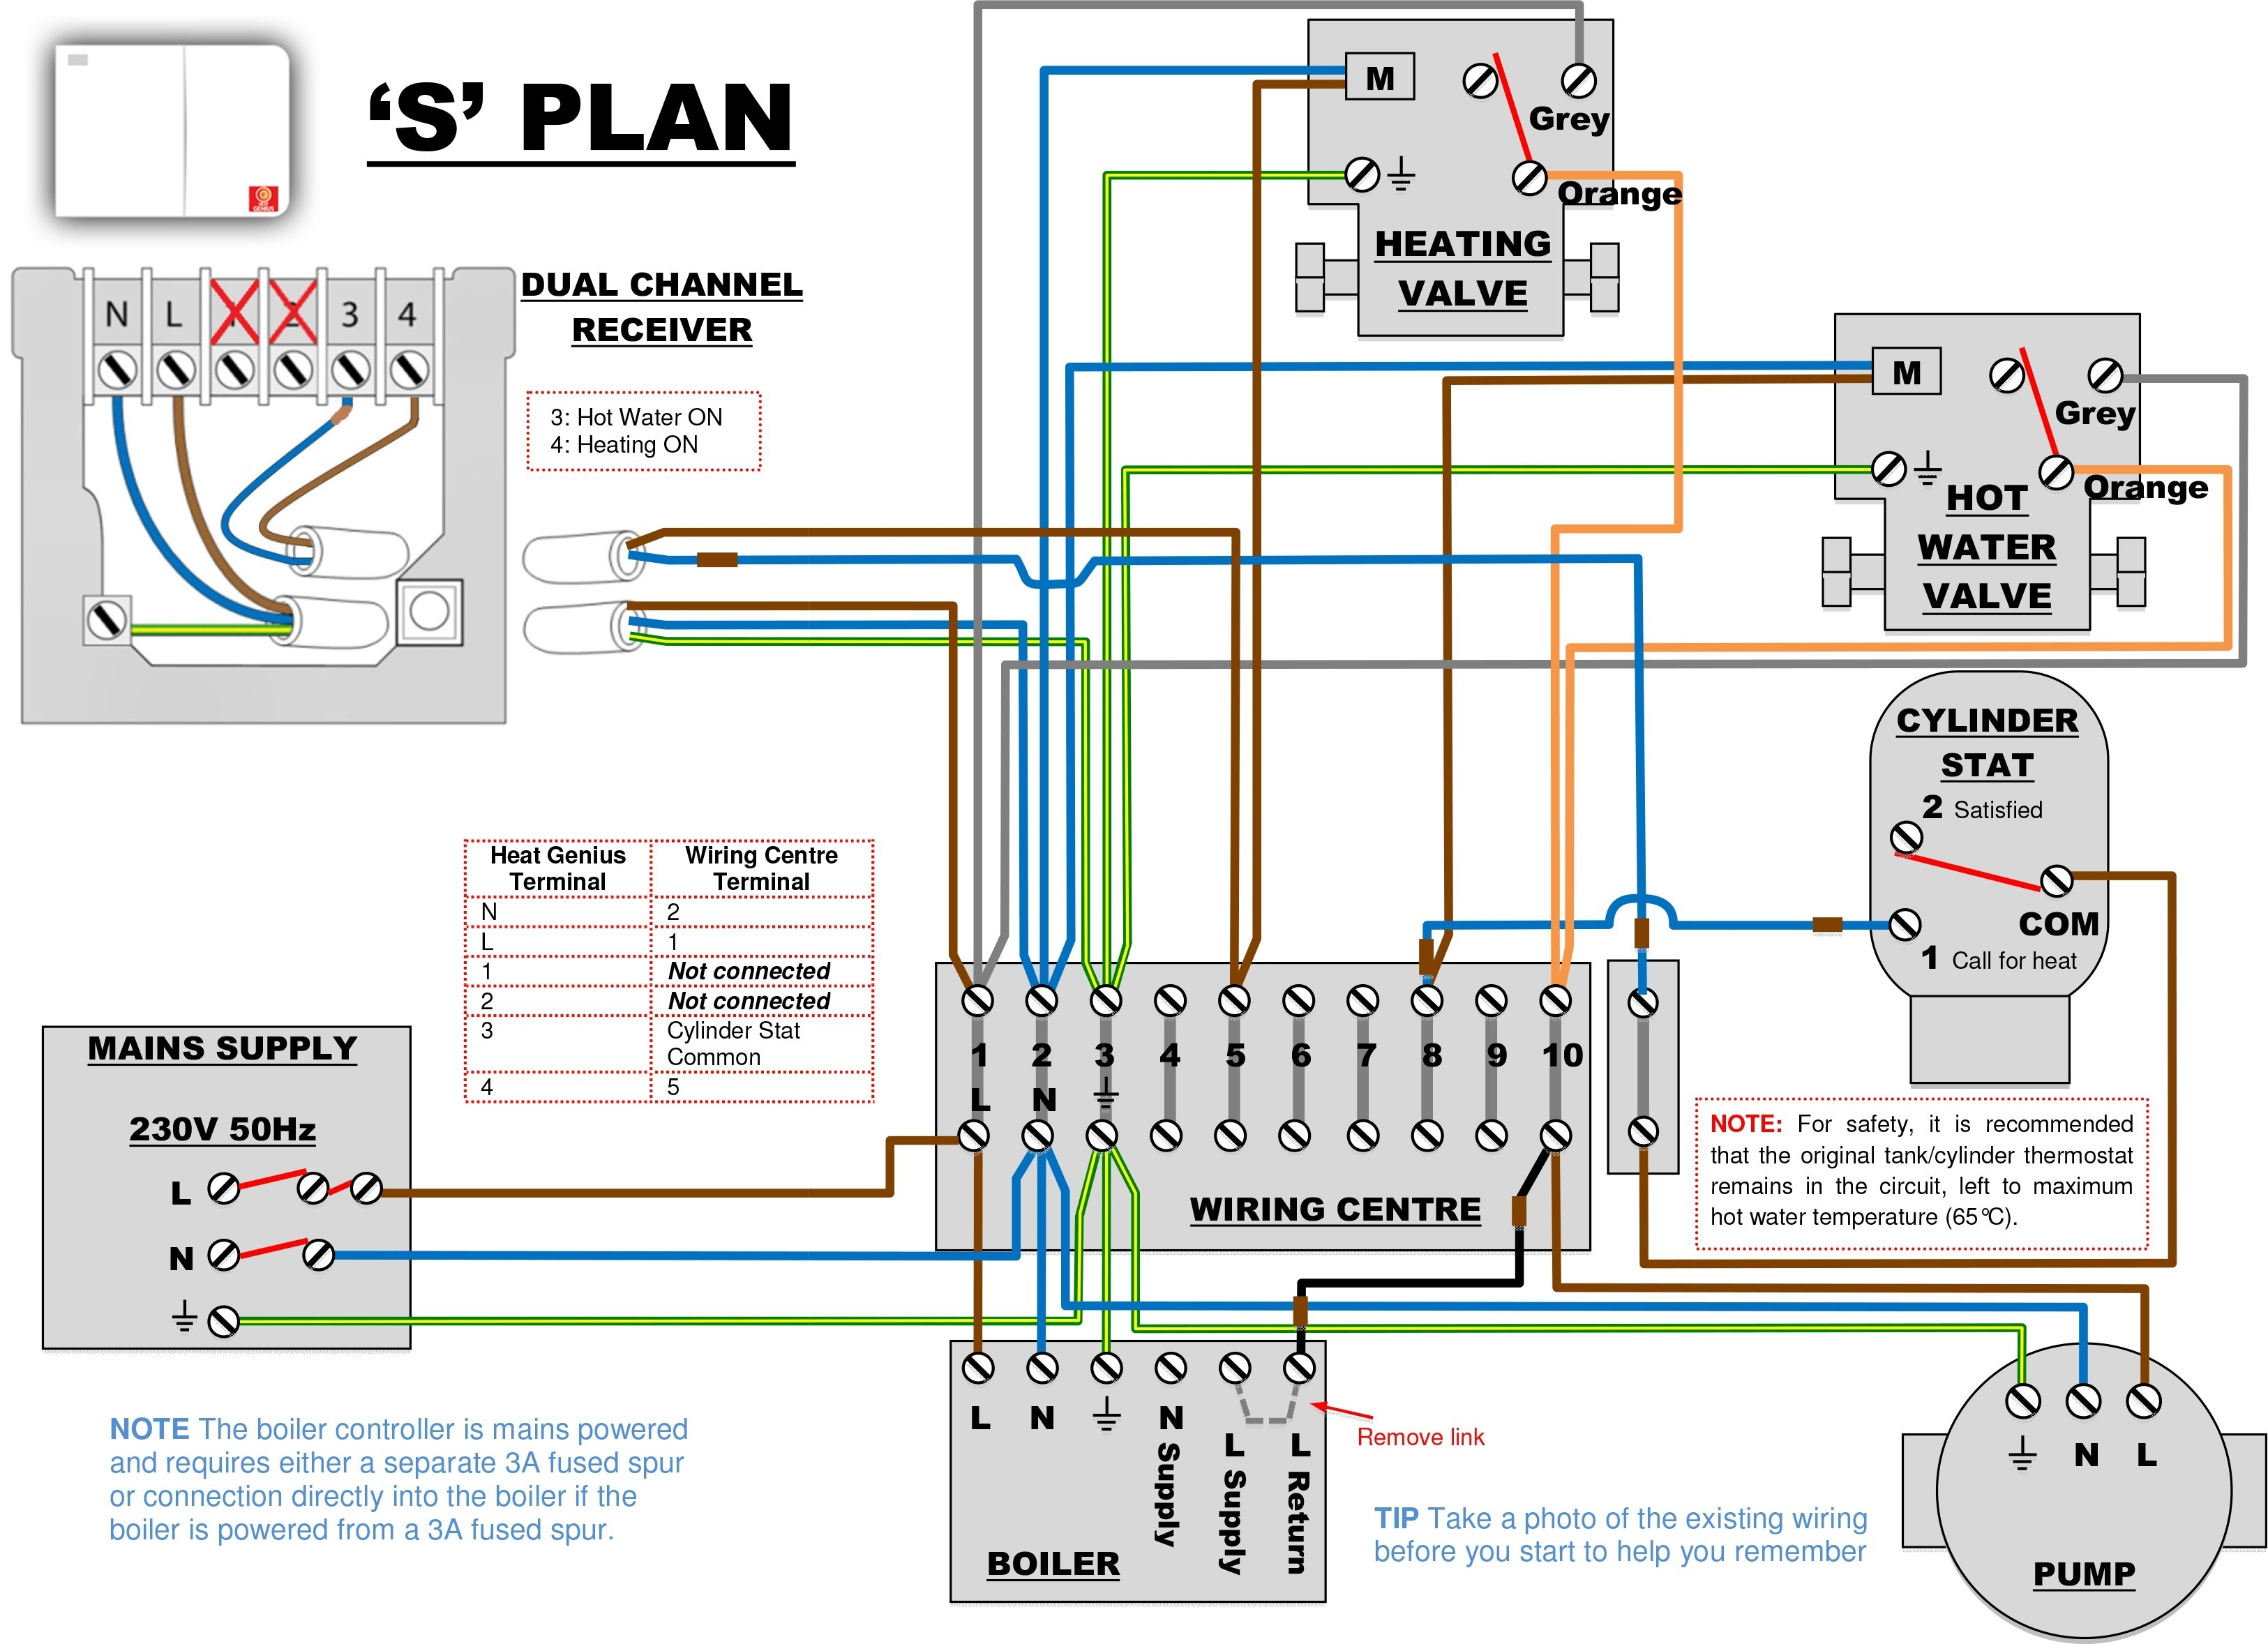 nest heat link wiring diagram    nest    thermostat    wiring       diagram       heat    pump free    wiring       diagram        nest    thermostat    wiring       diagram       heat    pump free    wiring       diagram